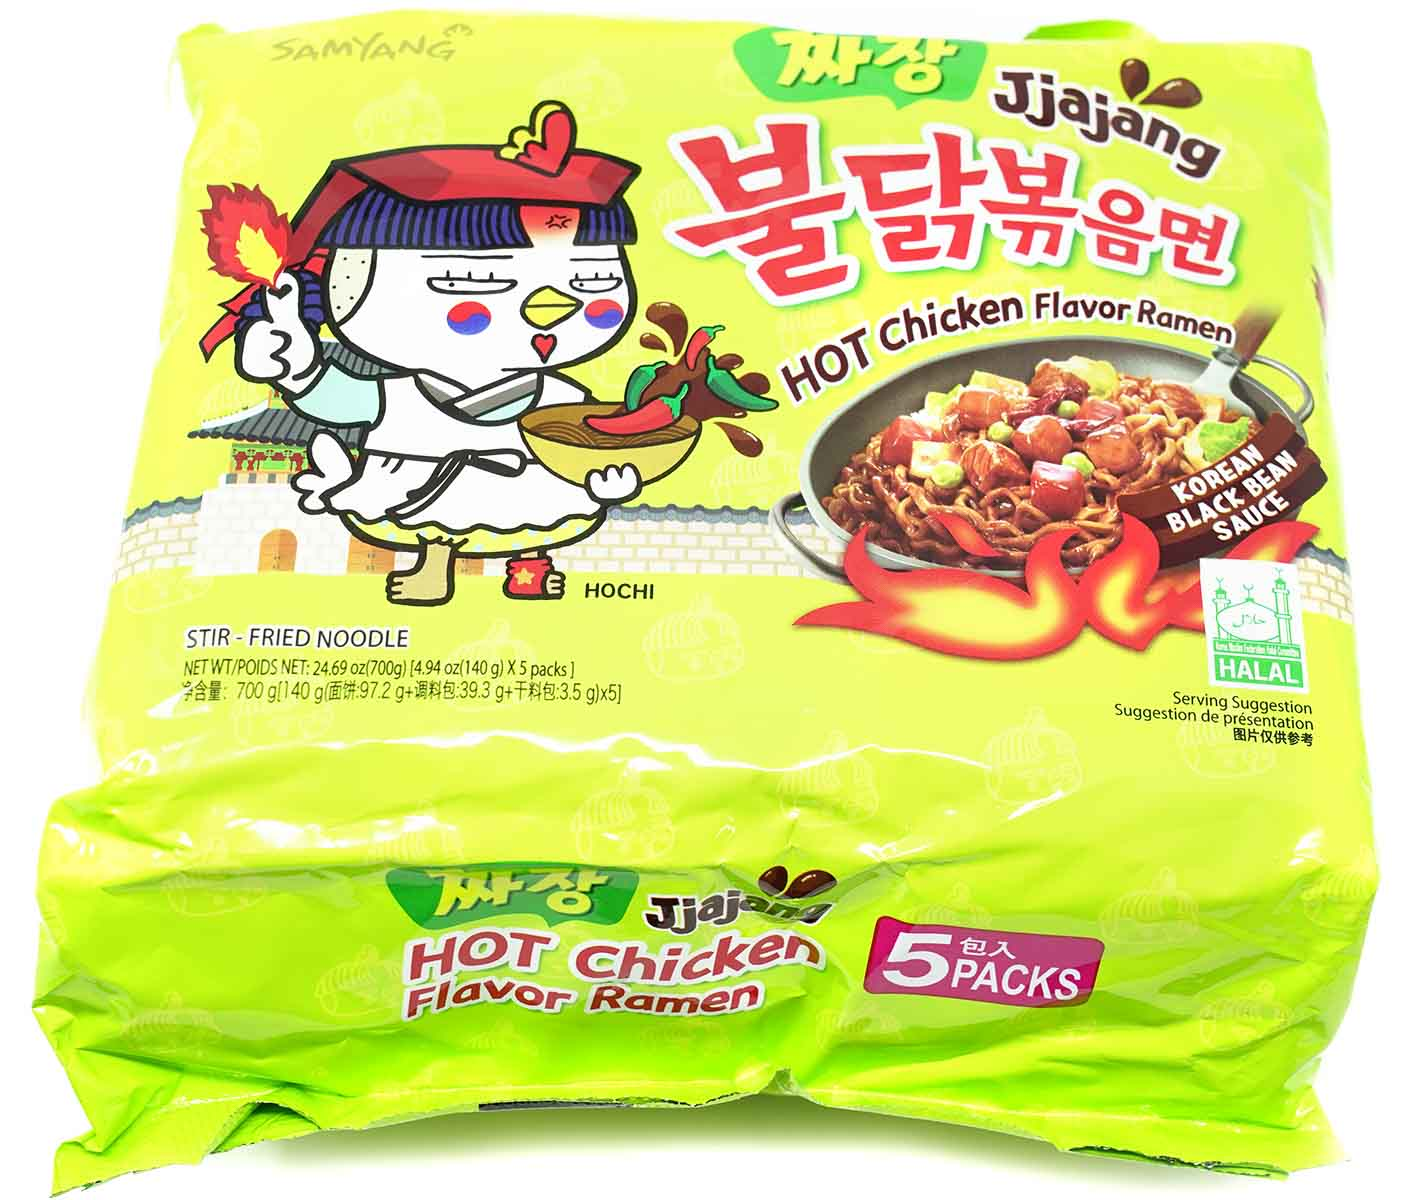 Samyang Hot Chicken Ramen Jjajang, 5x 140 g